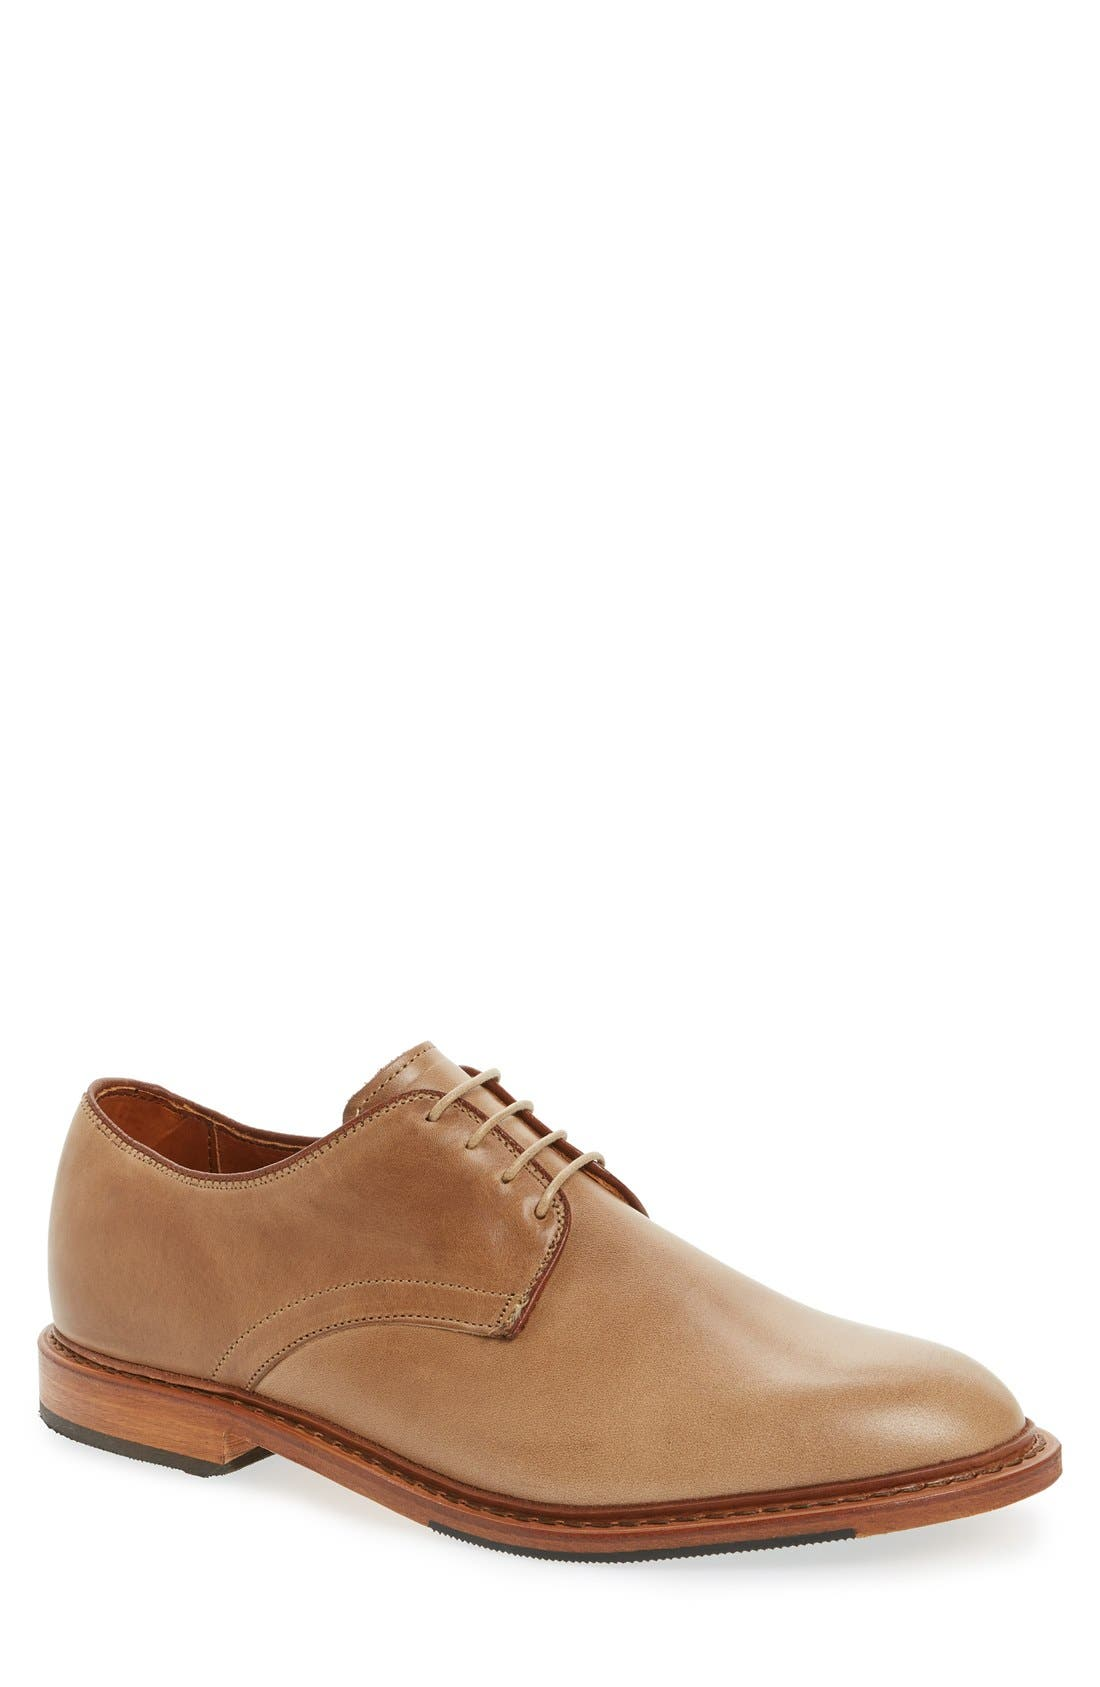 Academy Plain Toe Derby,                         Main,                         color, Natural Leather